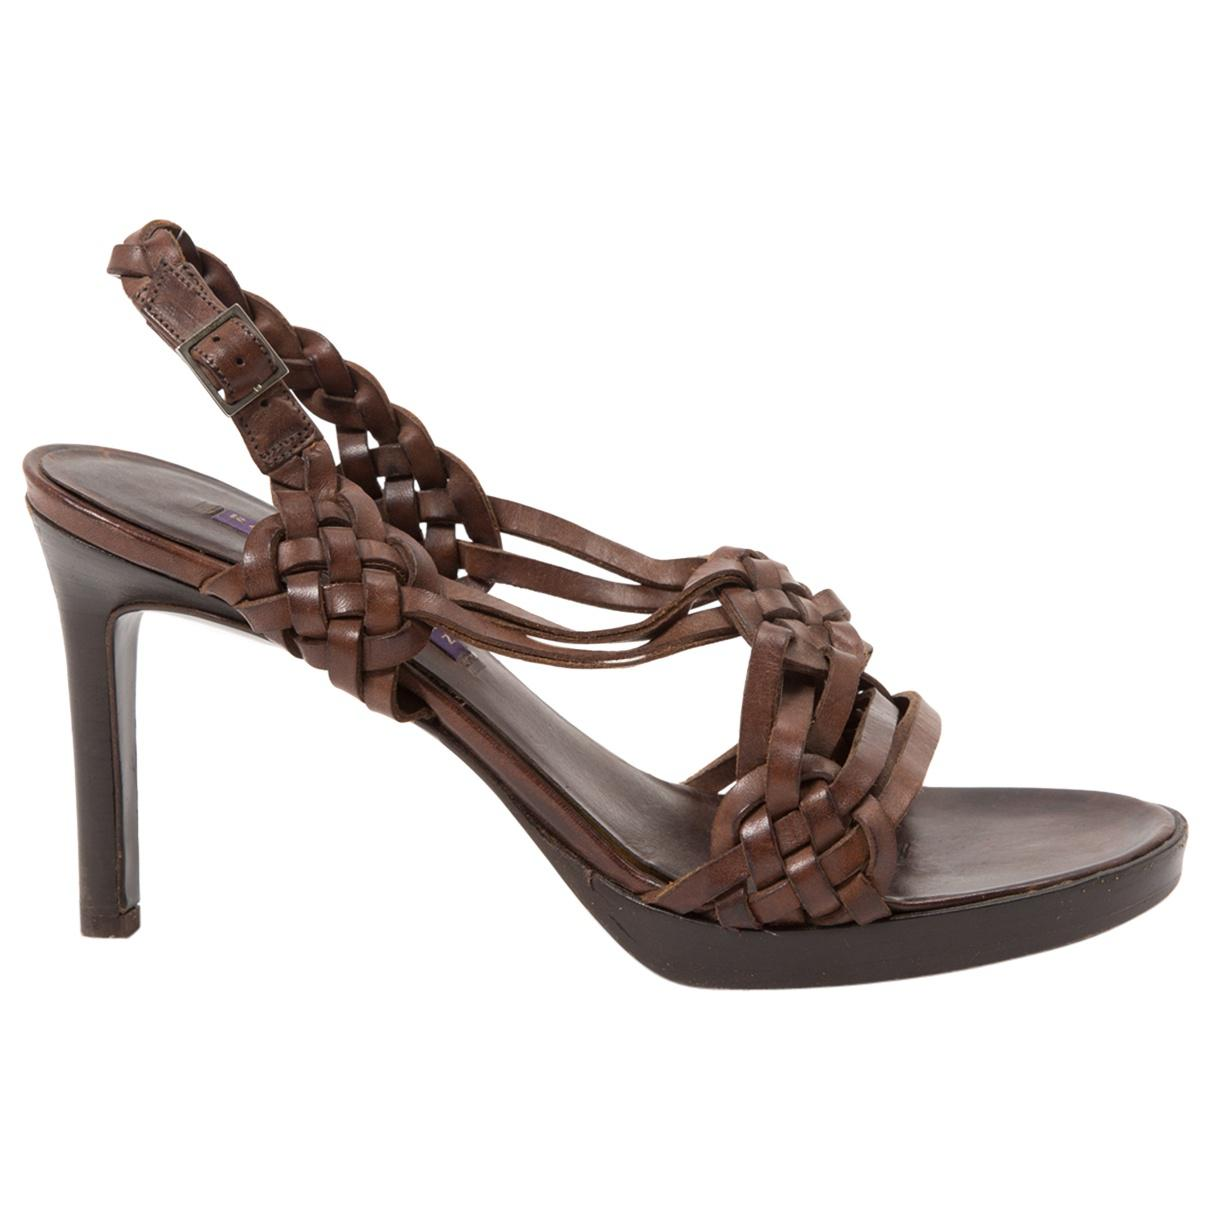 Pre-owned - Leather sandals Ralph Lauren WrmlgdFfY